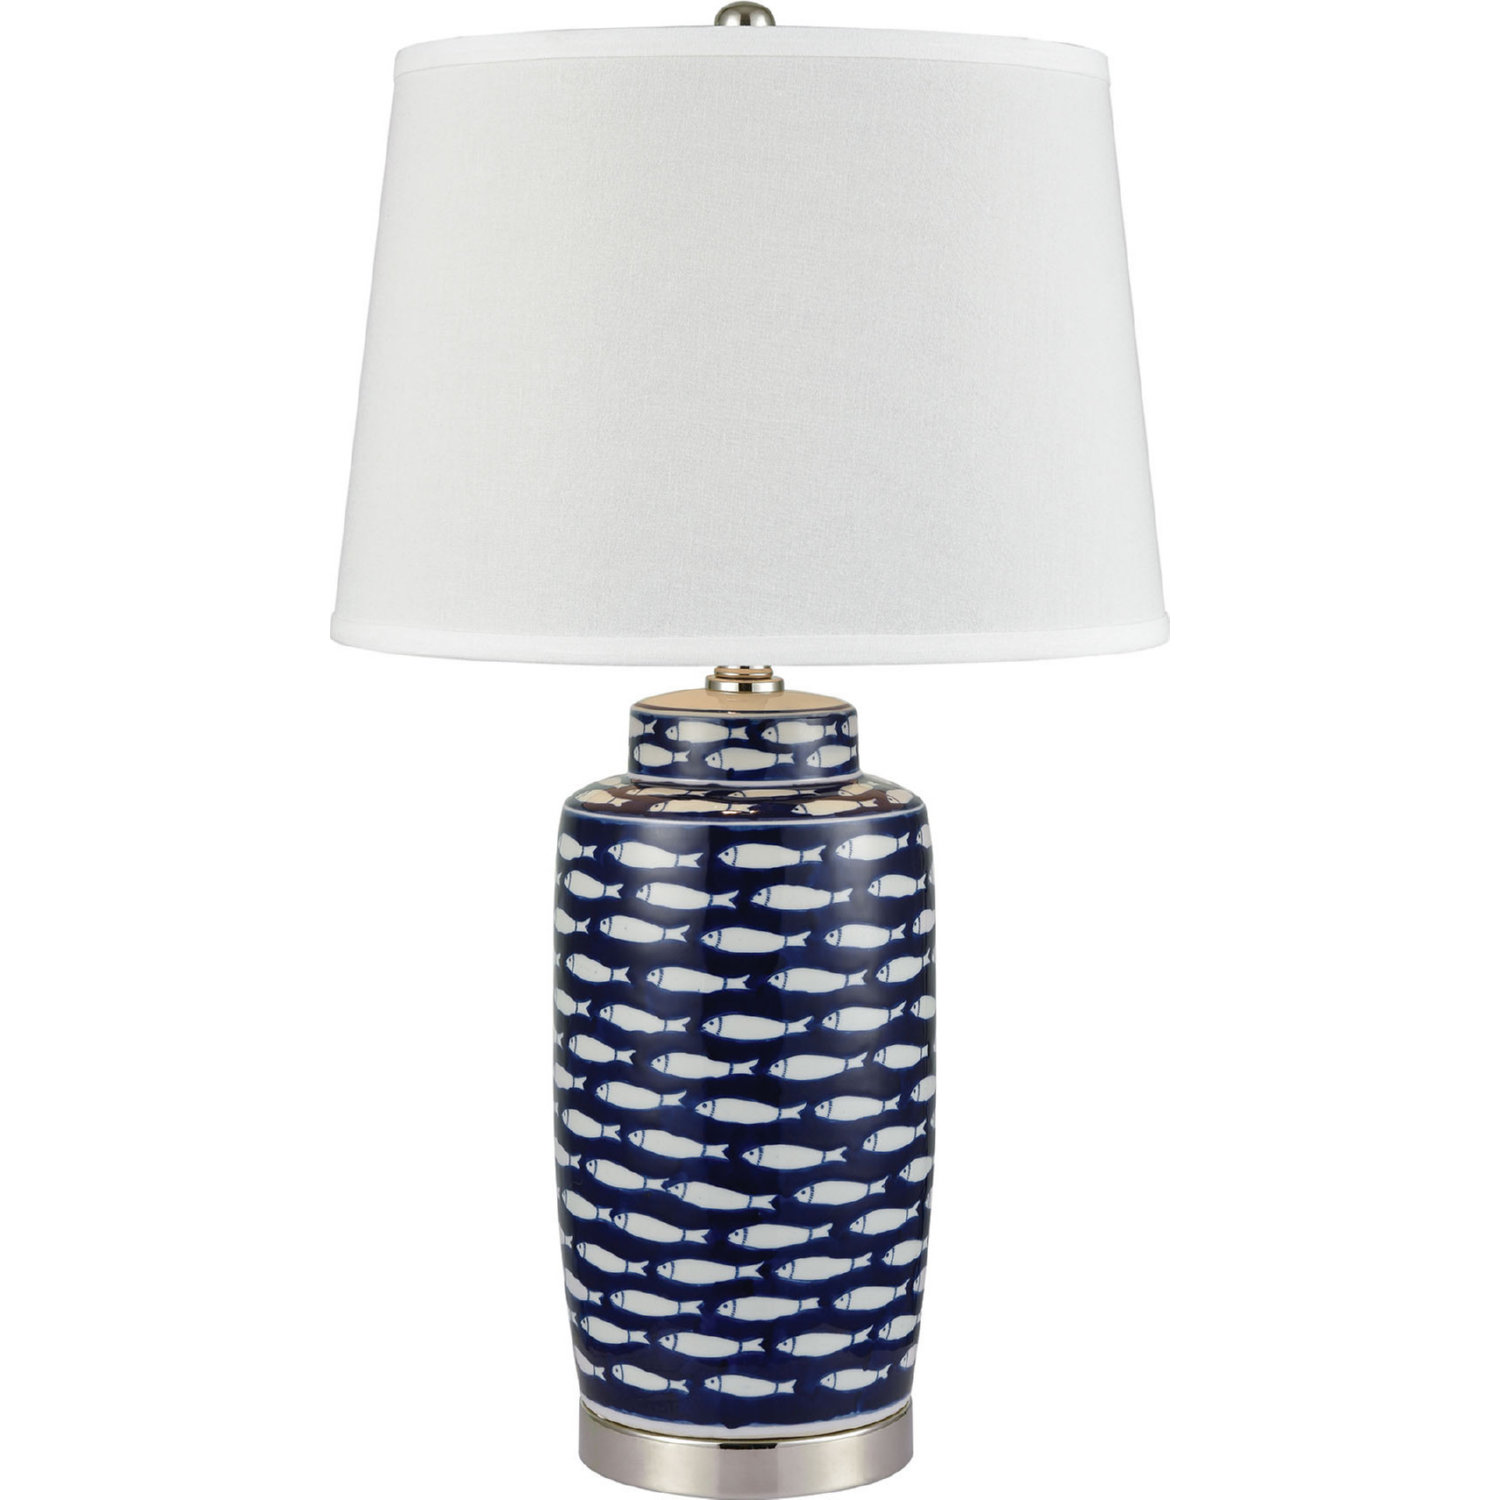 Blue White Ceramic Table Lamp W Fish Pattern By Stein World